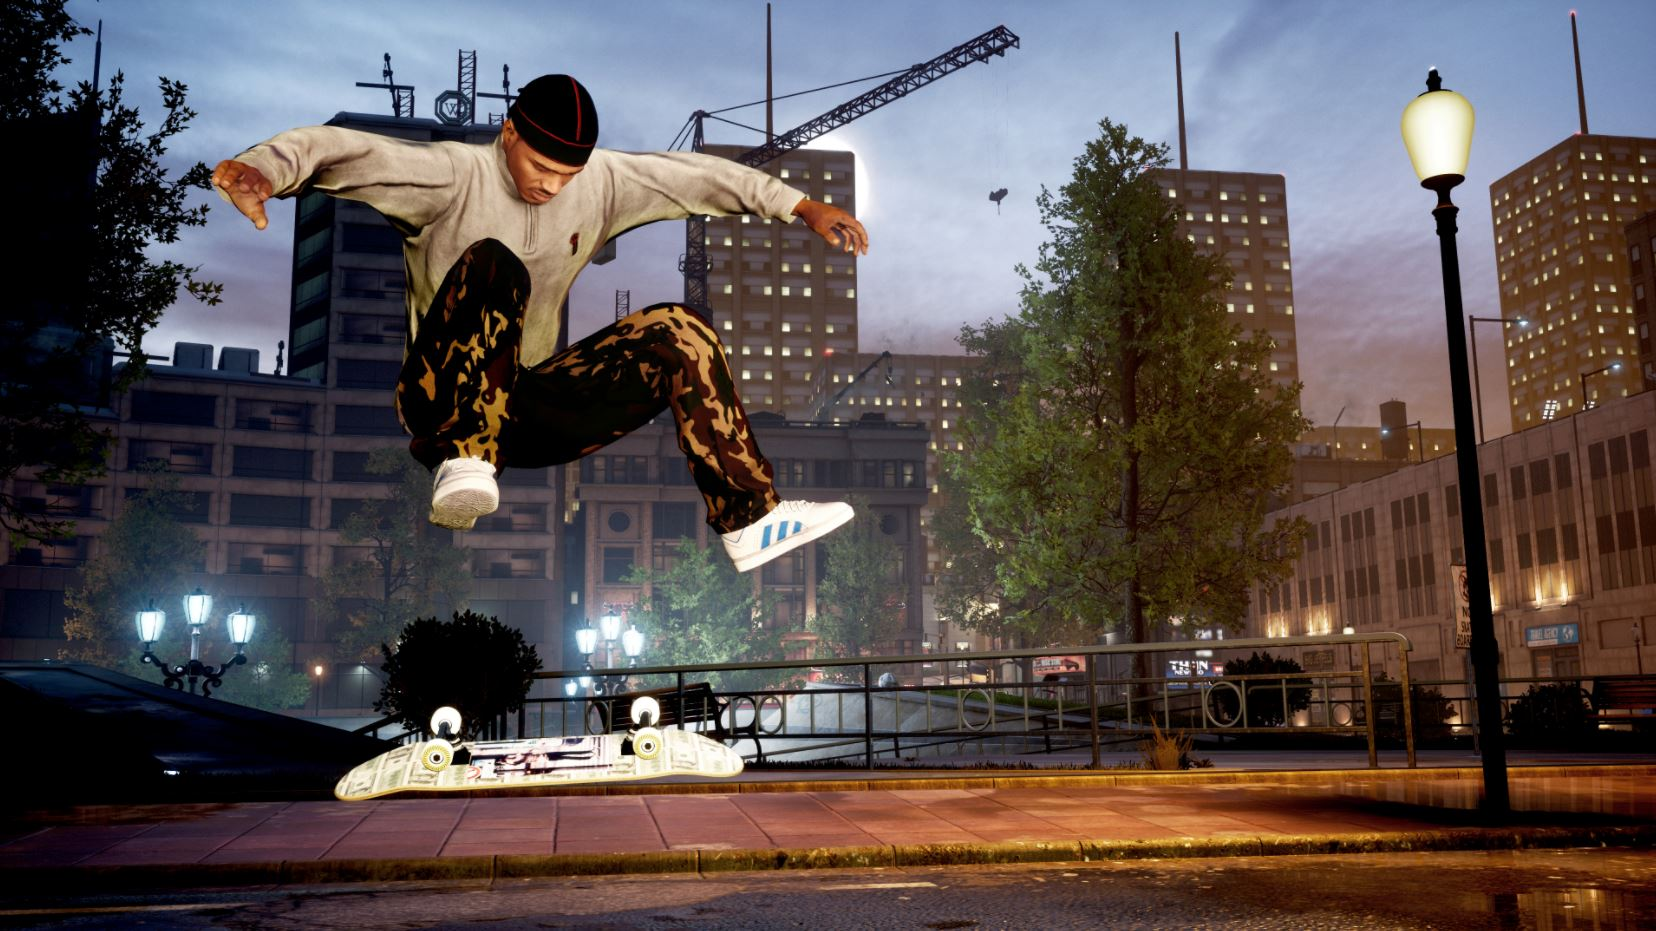 tony-hawks-pro-skater-1-2-coming-to-ps5-in-march-with-120-fps-and-4k-options-no-free-upgrade-for-standard-edition-owners